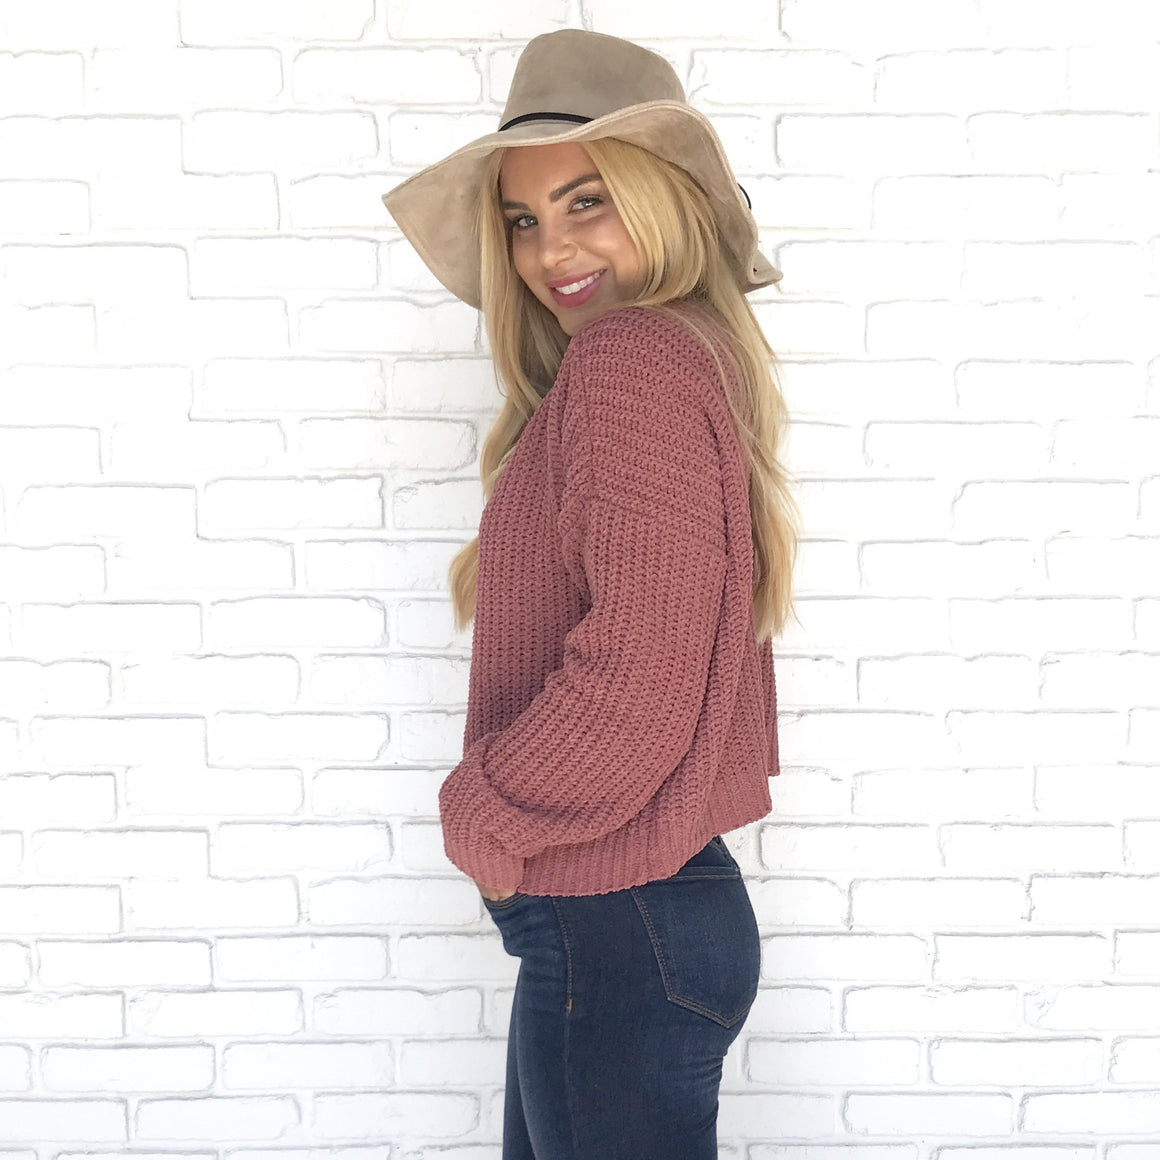 Let's Get Cozy Knit Sweater in Mauve - Dainty Hooligan